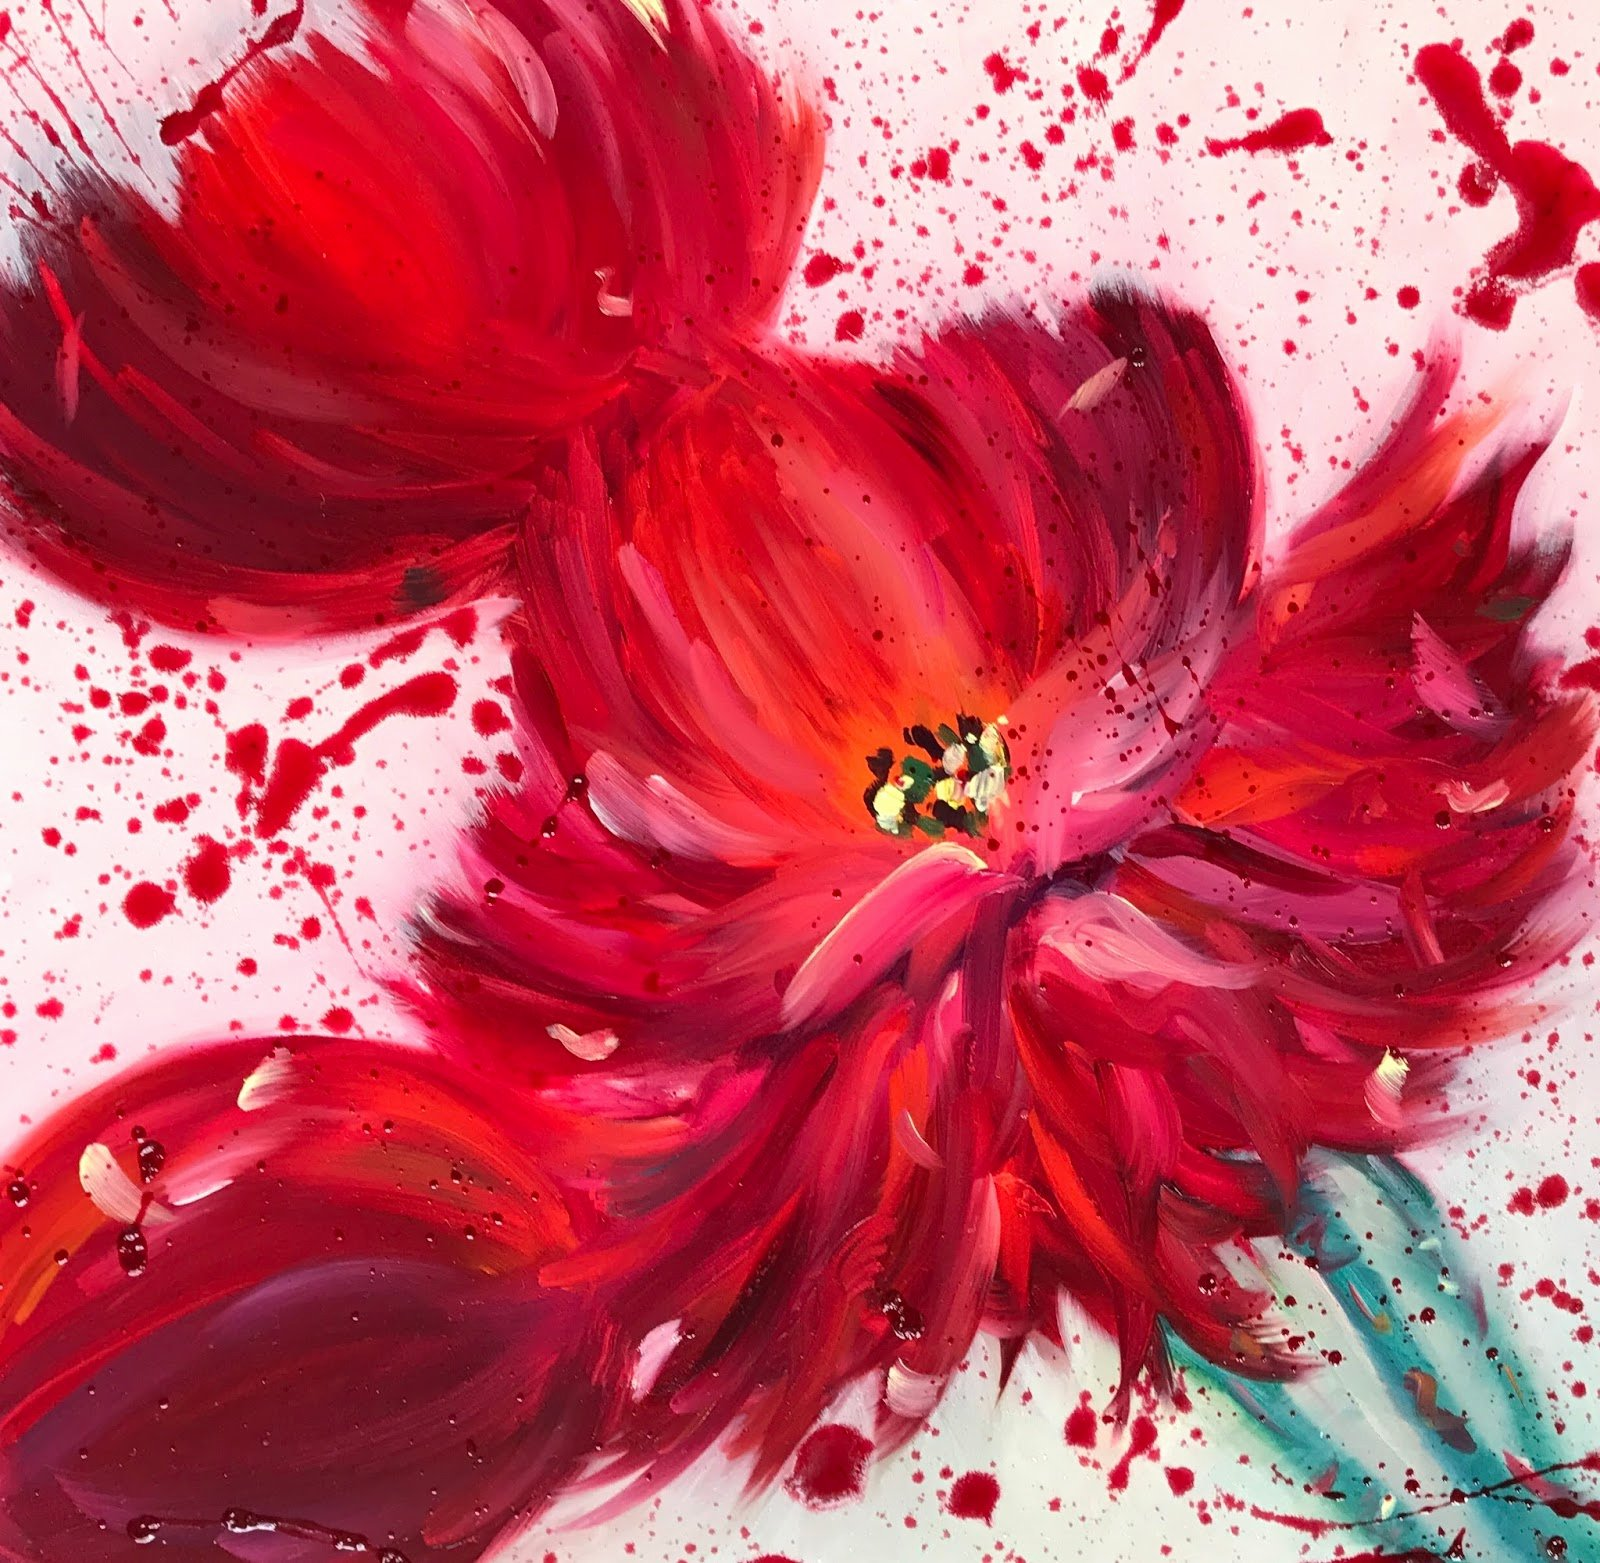 Modern Abstract Flower Paintings Luxury Kimberly Conrad Life Art Business